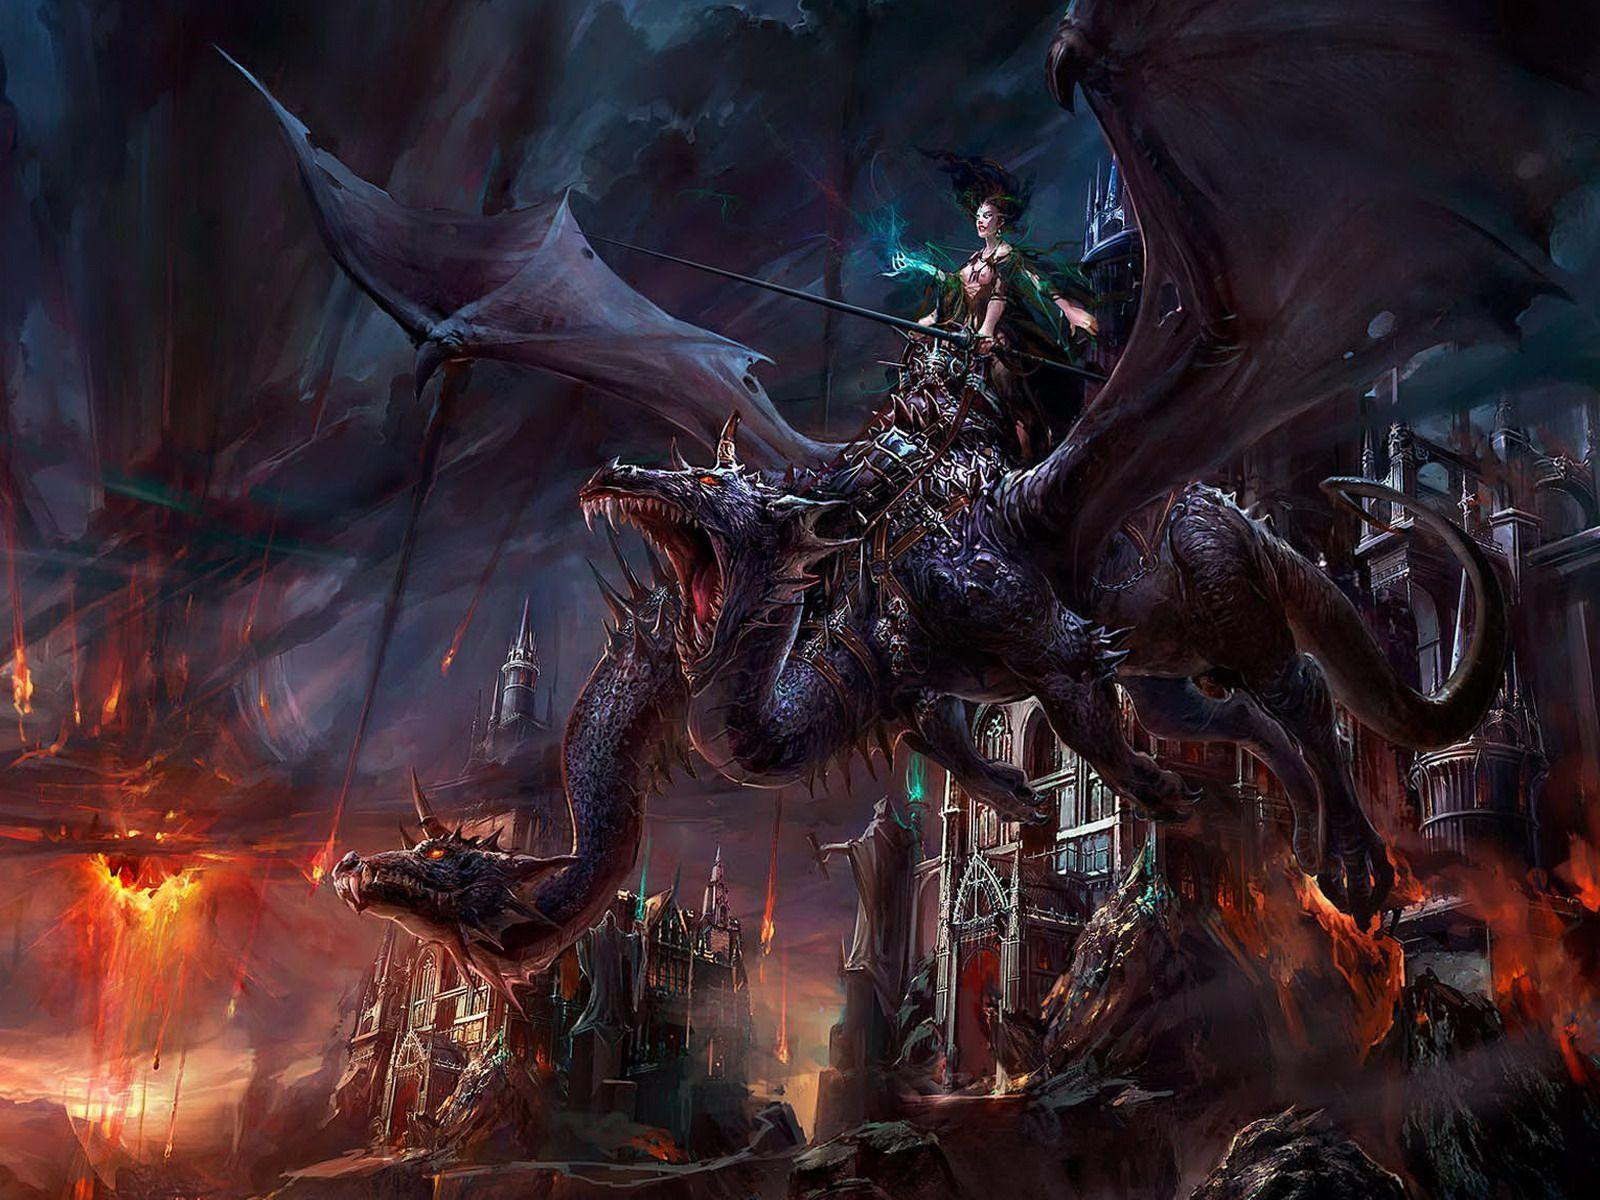 Page 1365 | Fire dragon wallpaper , Death in a suit hd wallpaper ...